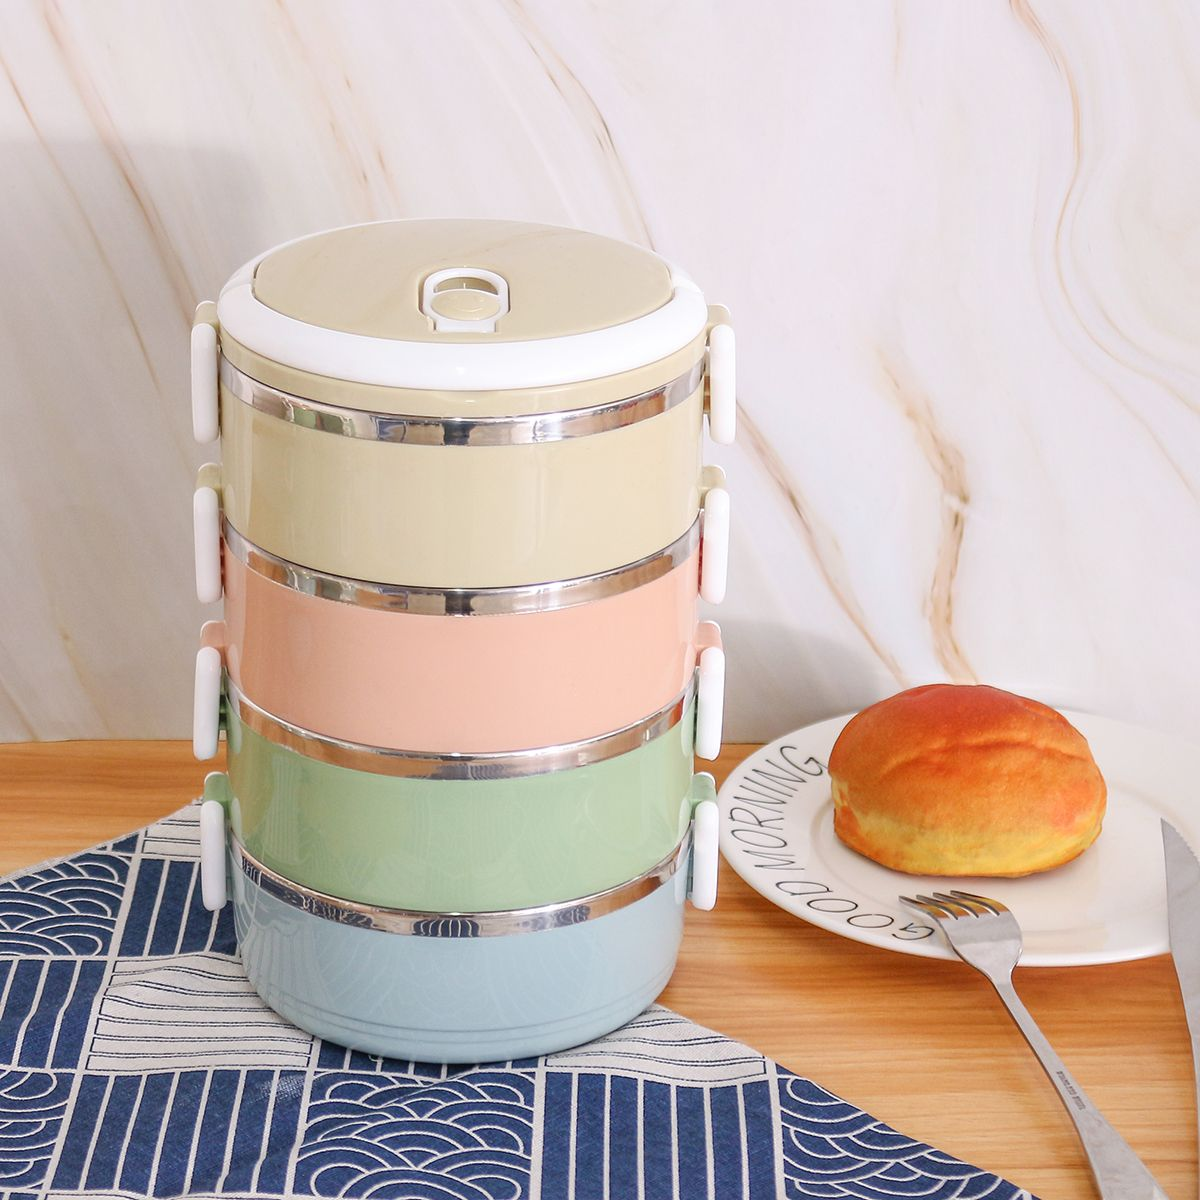 234 layers stainless steel lunch box round thermal